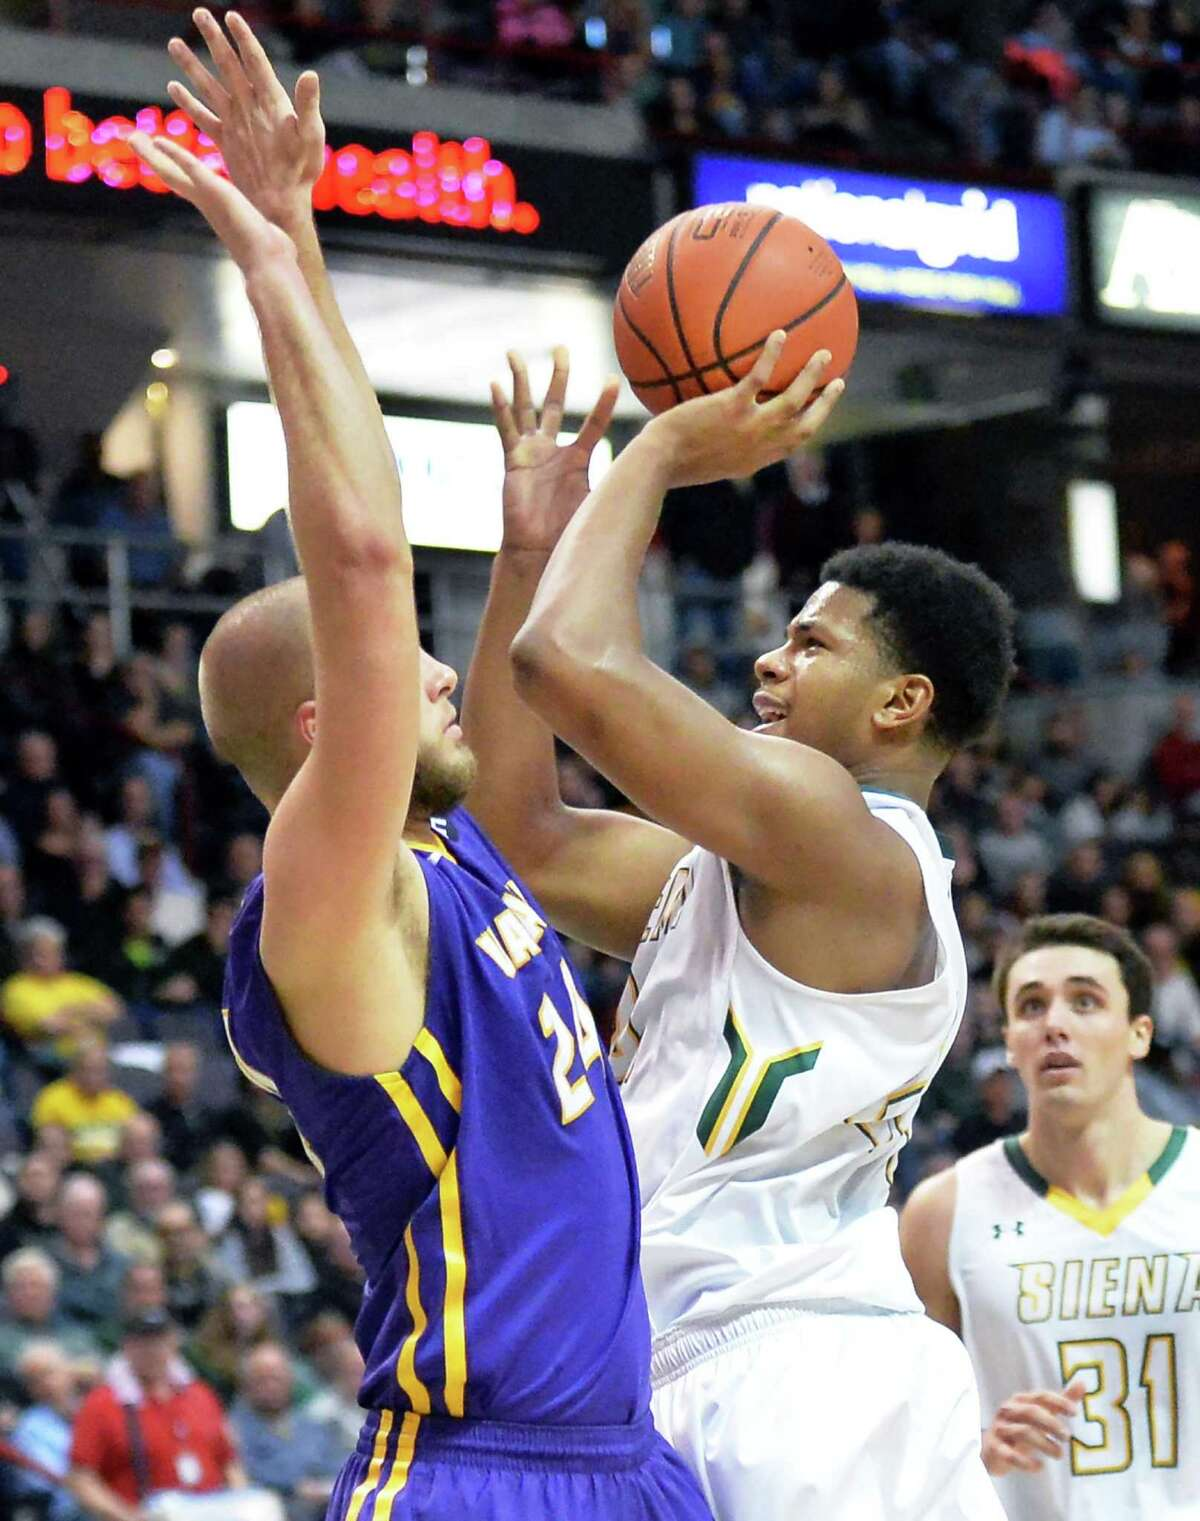 UAlbany's #24 Dallas Ennema, left, defends against Siena's #24 Lavon Long's shot during Saturday's game at the Times Union Center Dec. 12, 2015 in Albany, NY. (John Carl D'Annibale / Times Union)